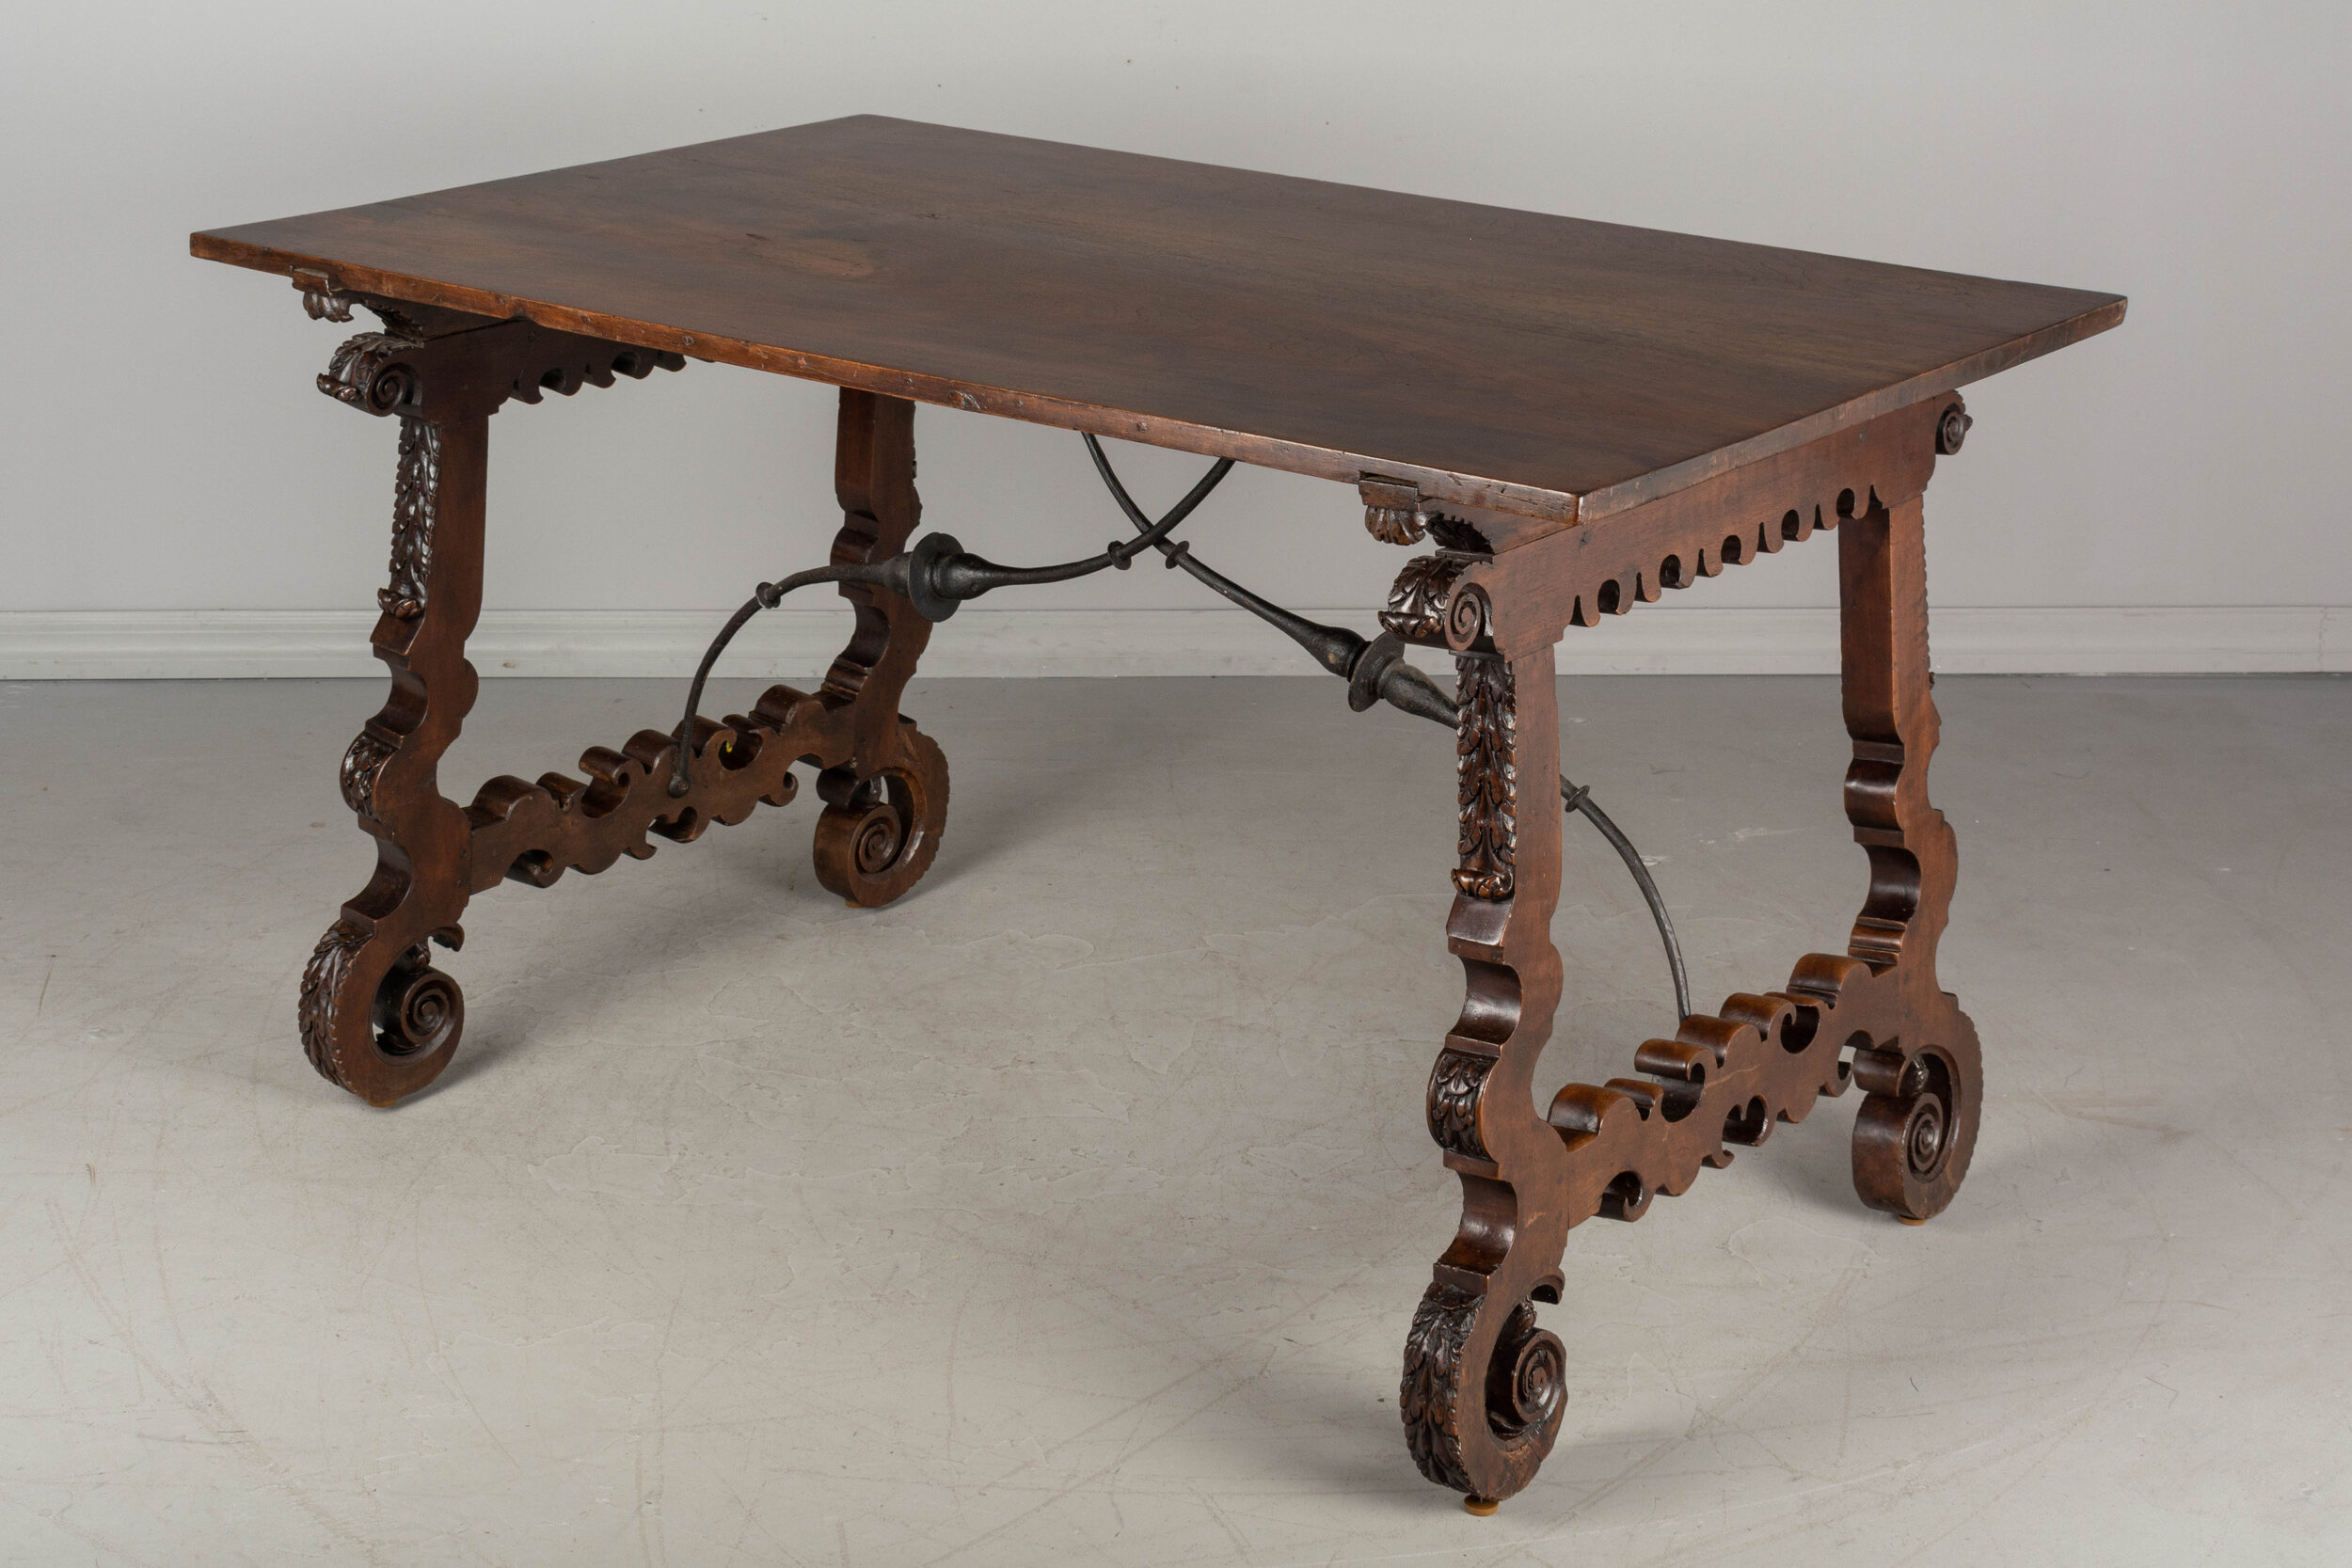 olivier fleury antiques antique french tables for sale antique console kitchen tables for sale